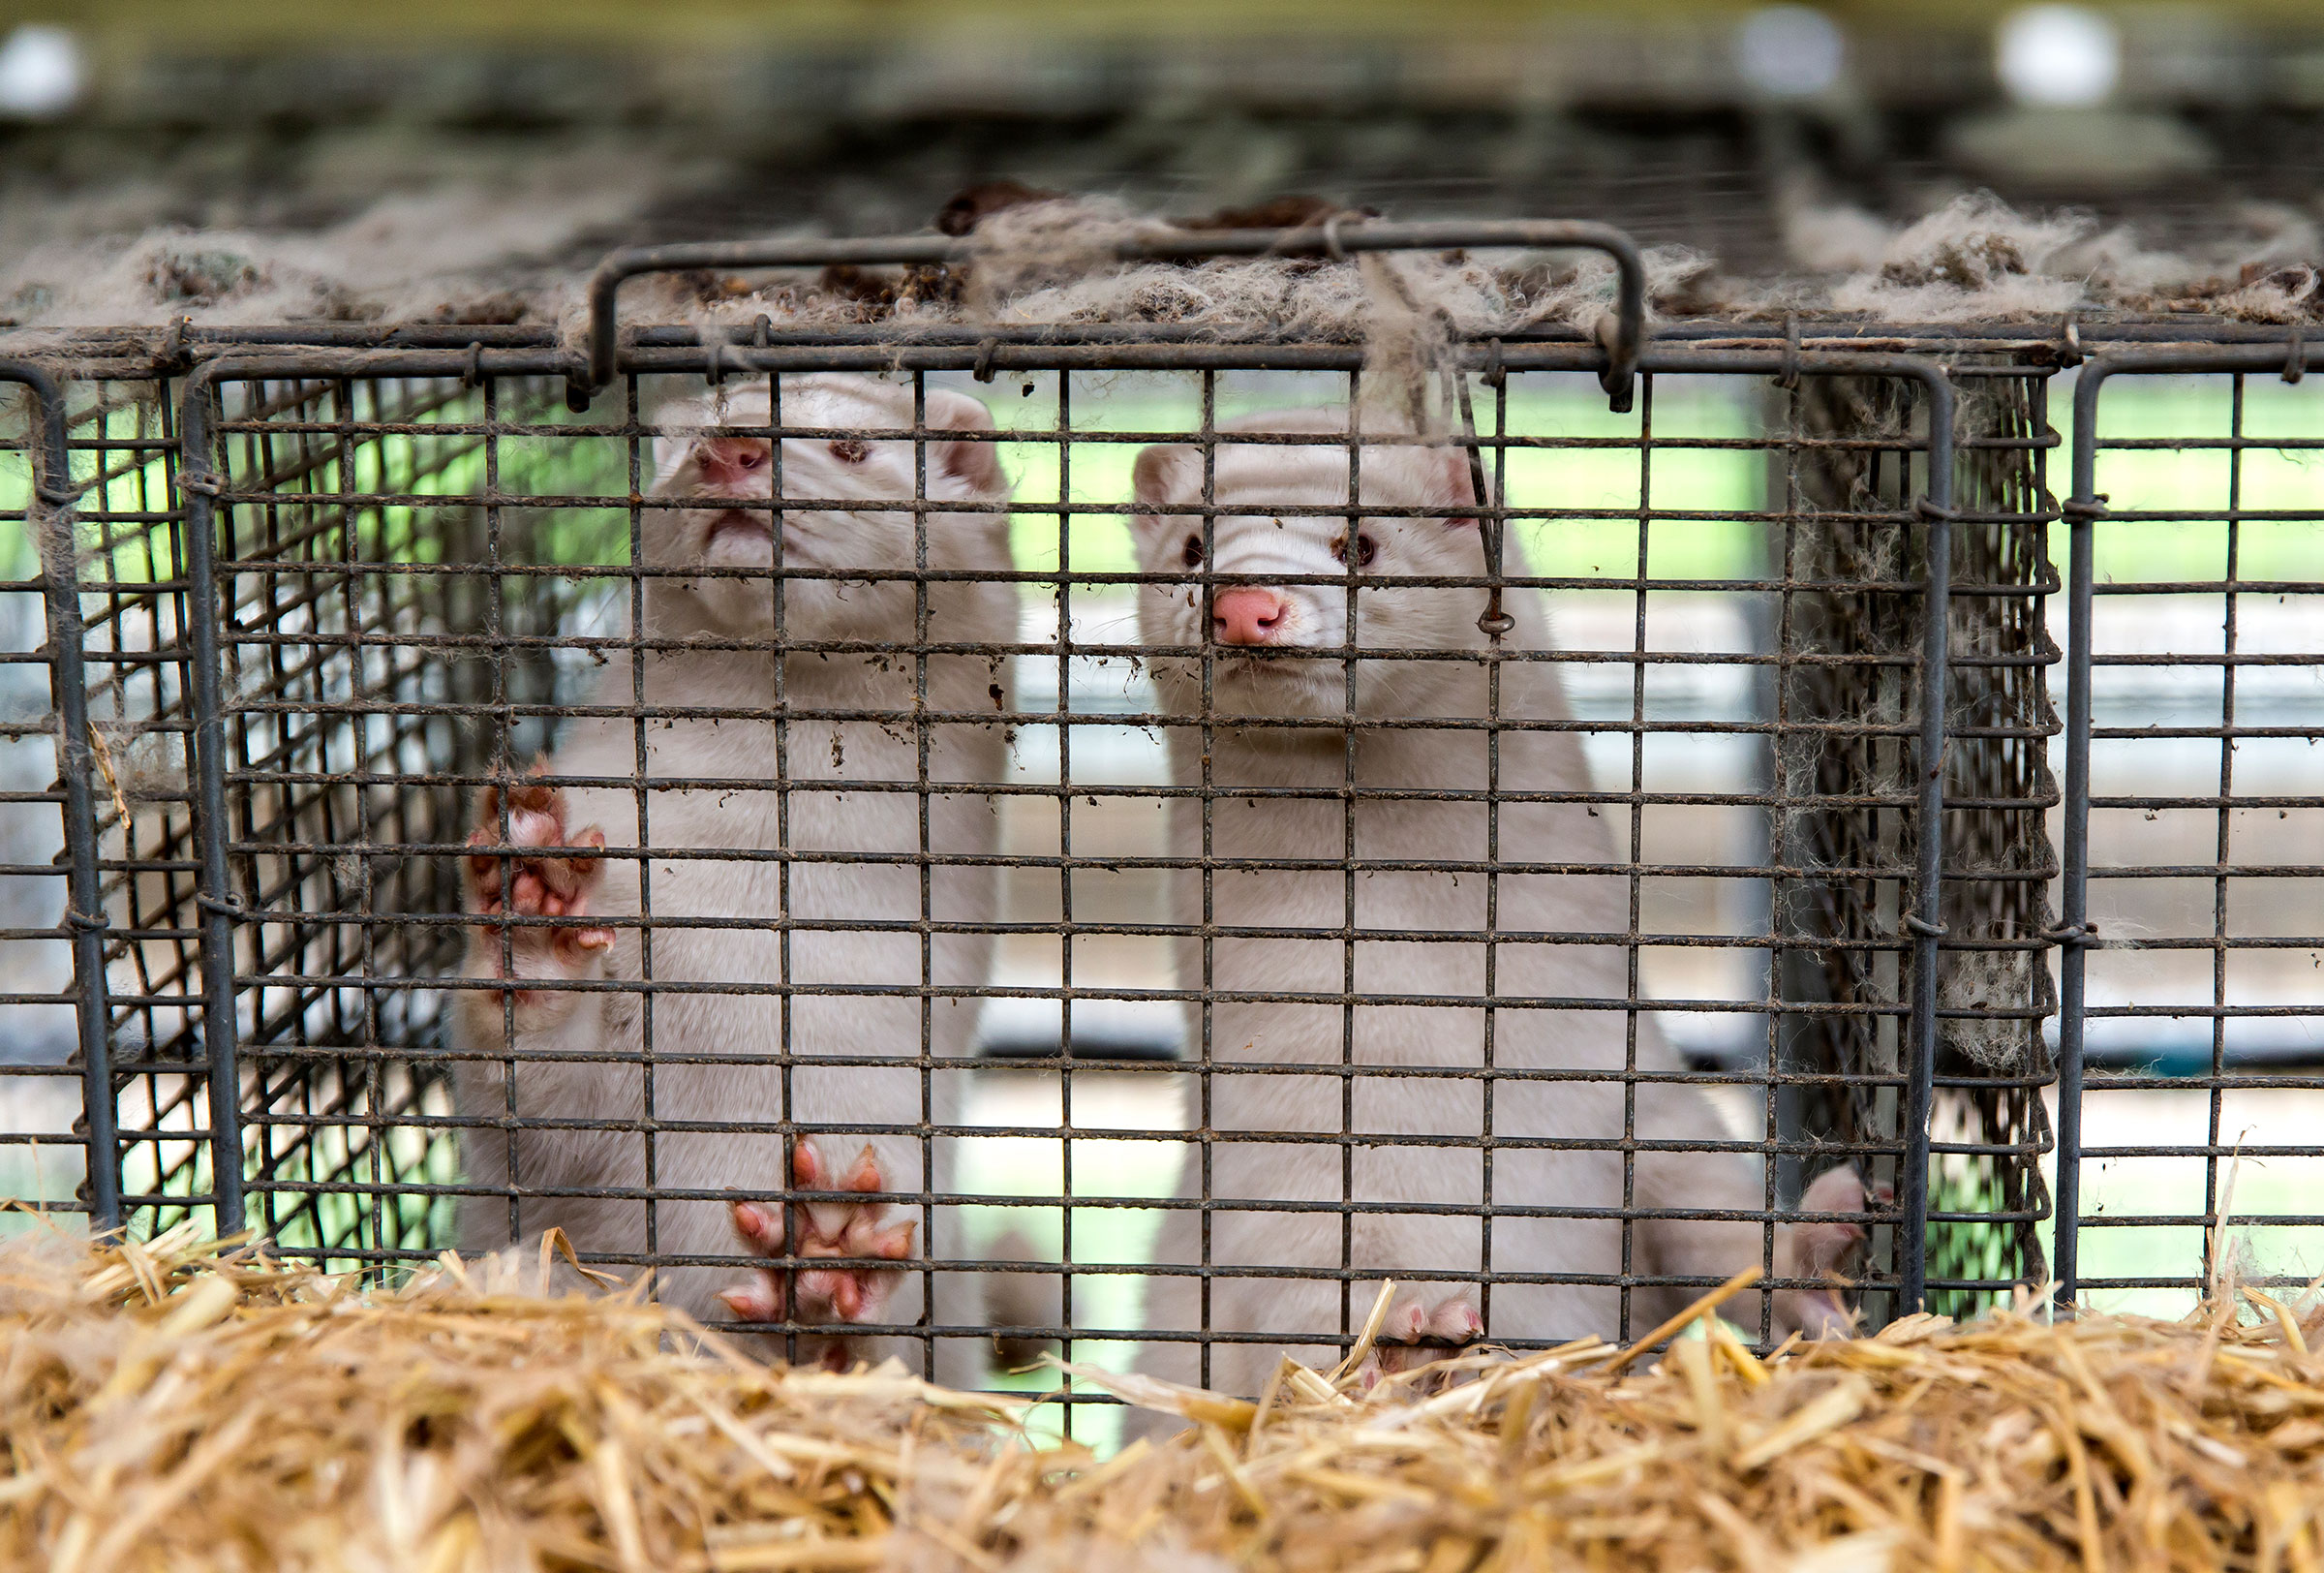 Minks sit in a cage at a farm where all minks must be culled due to a government order on November 7 in Bording, Denmark.